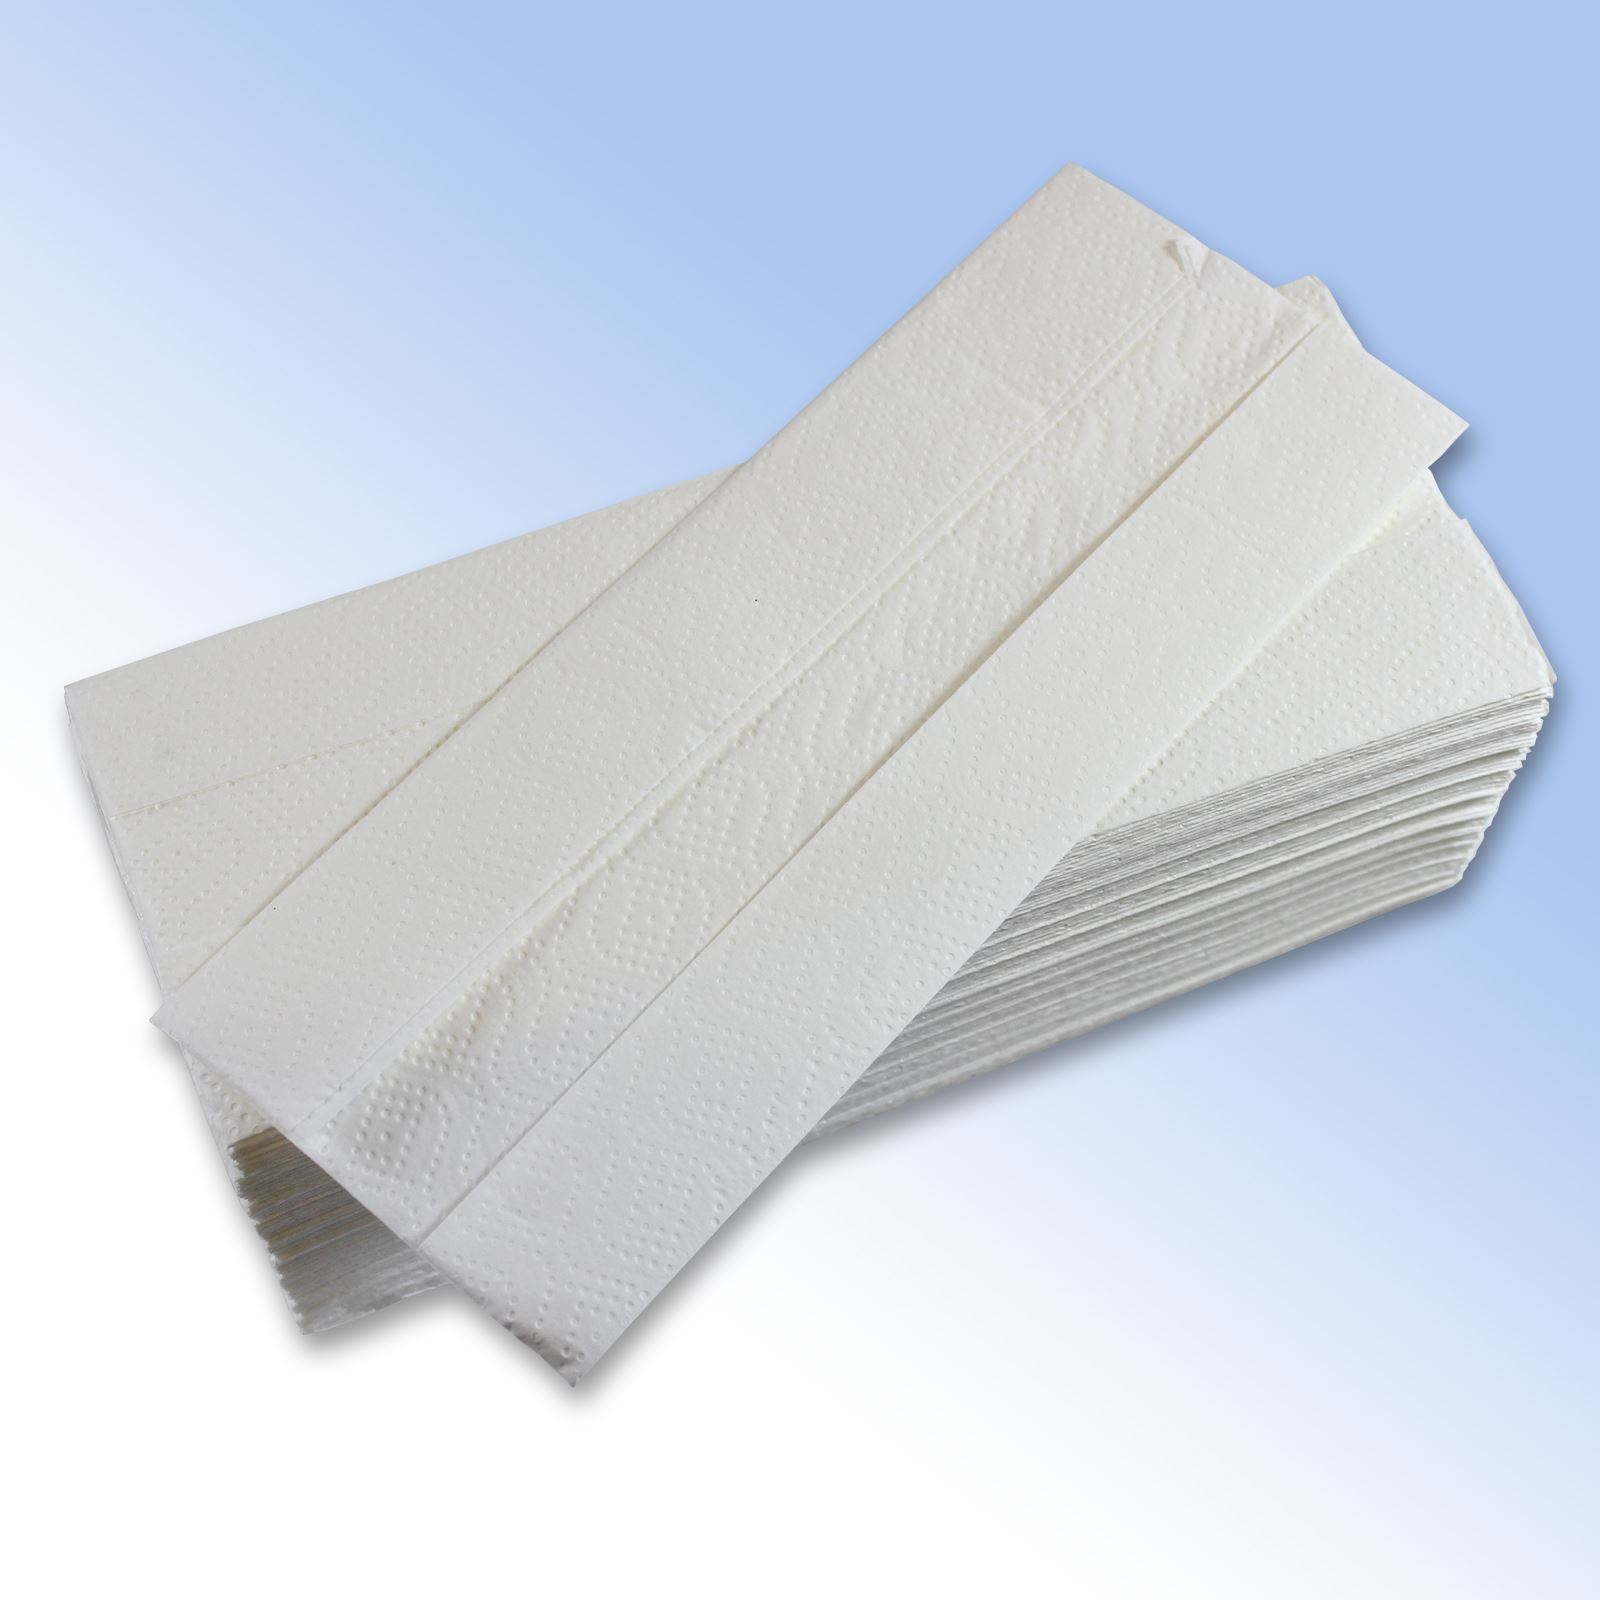 CFold MultiFold Paper Hand Towels 2ply Luxury White And